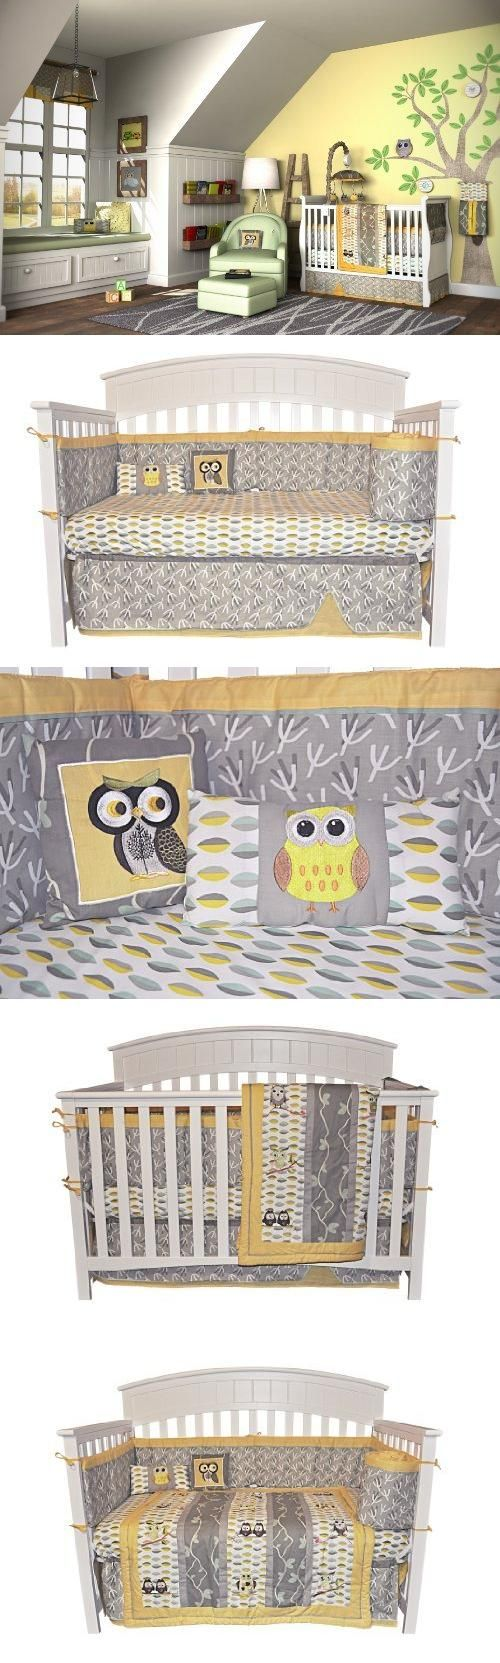 Crib for life prices - 10pc Owl Gender Neutral Crib Bedding Set Grey Yellow New Born Baby Child